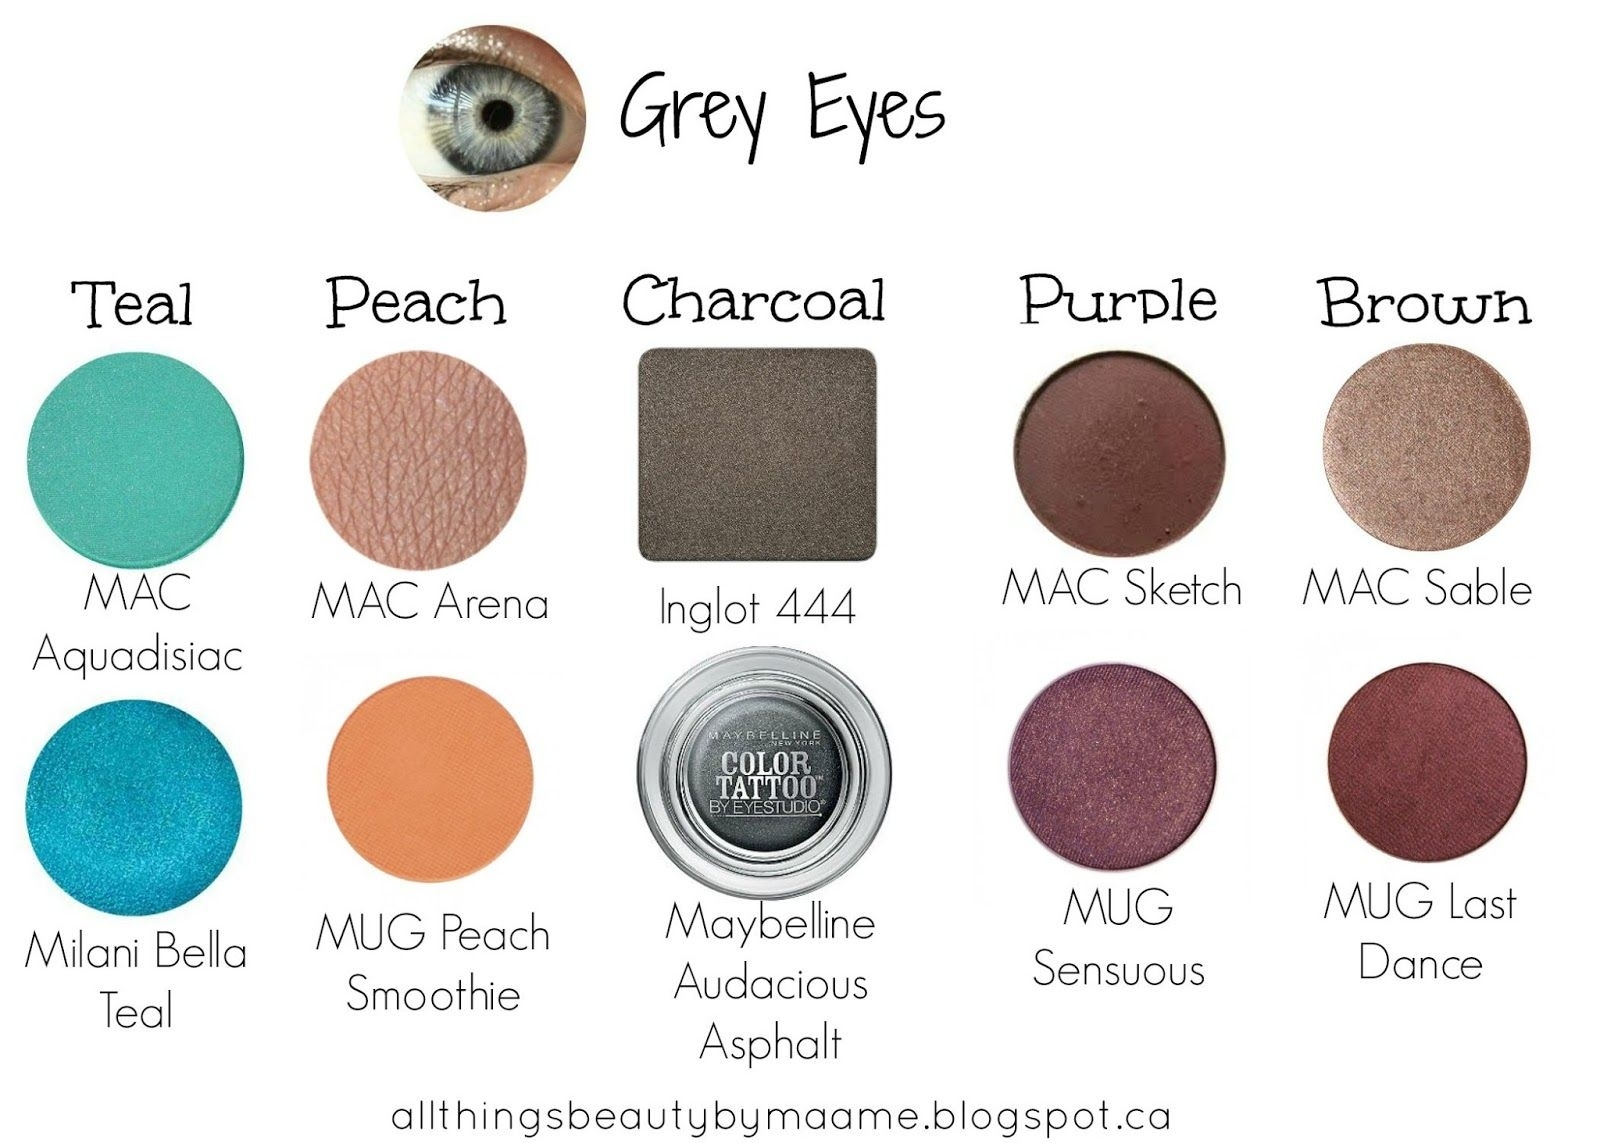 Pin By Ashley Marie On Makeup | Beauty Guide, Eye Color, Eye Makeup throughout Best Color Eyeshadow For Blue Gray Eyes